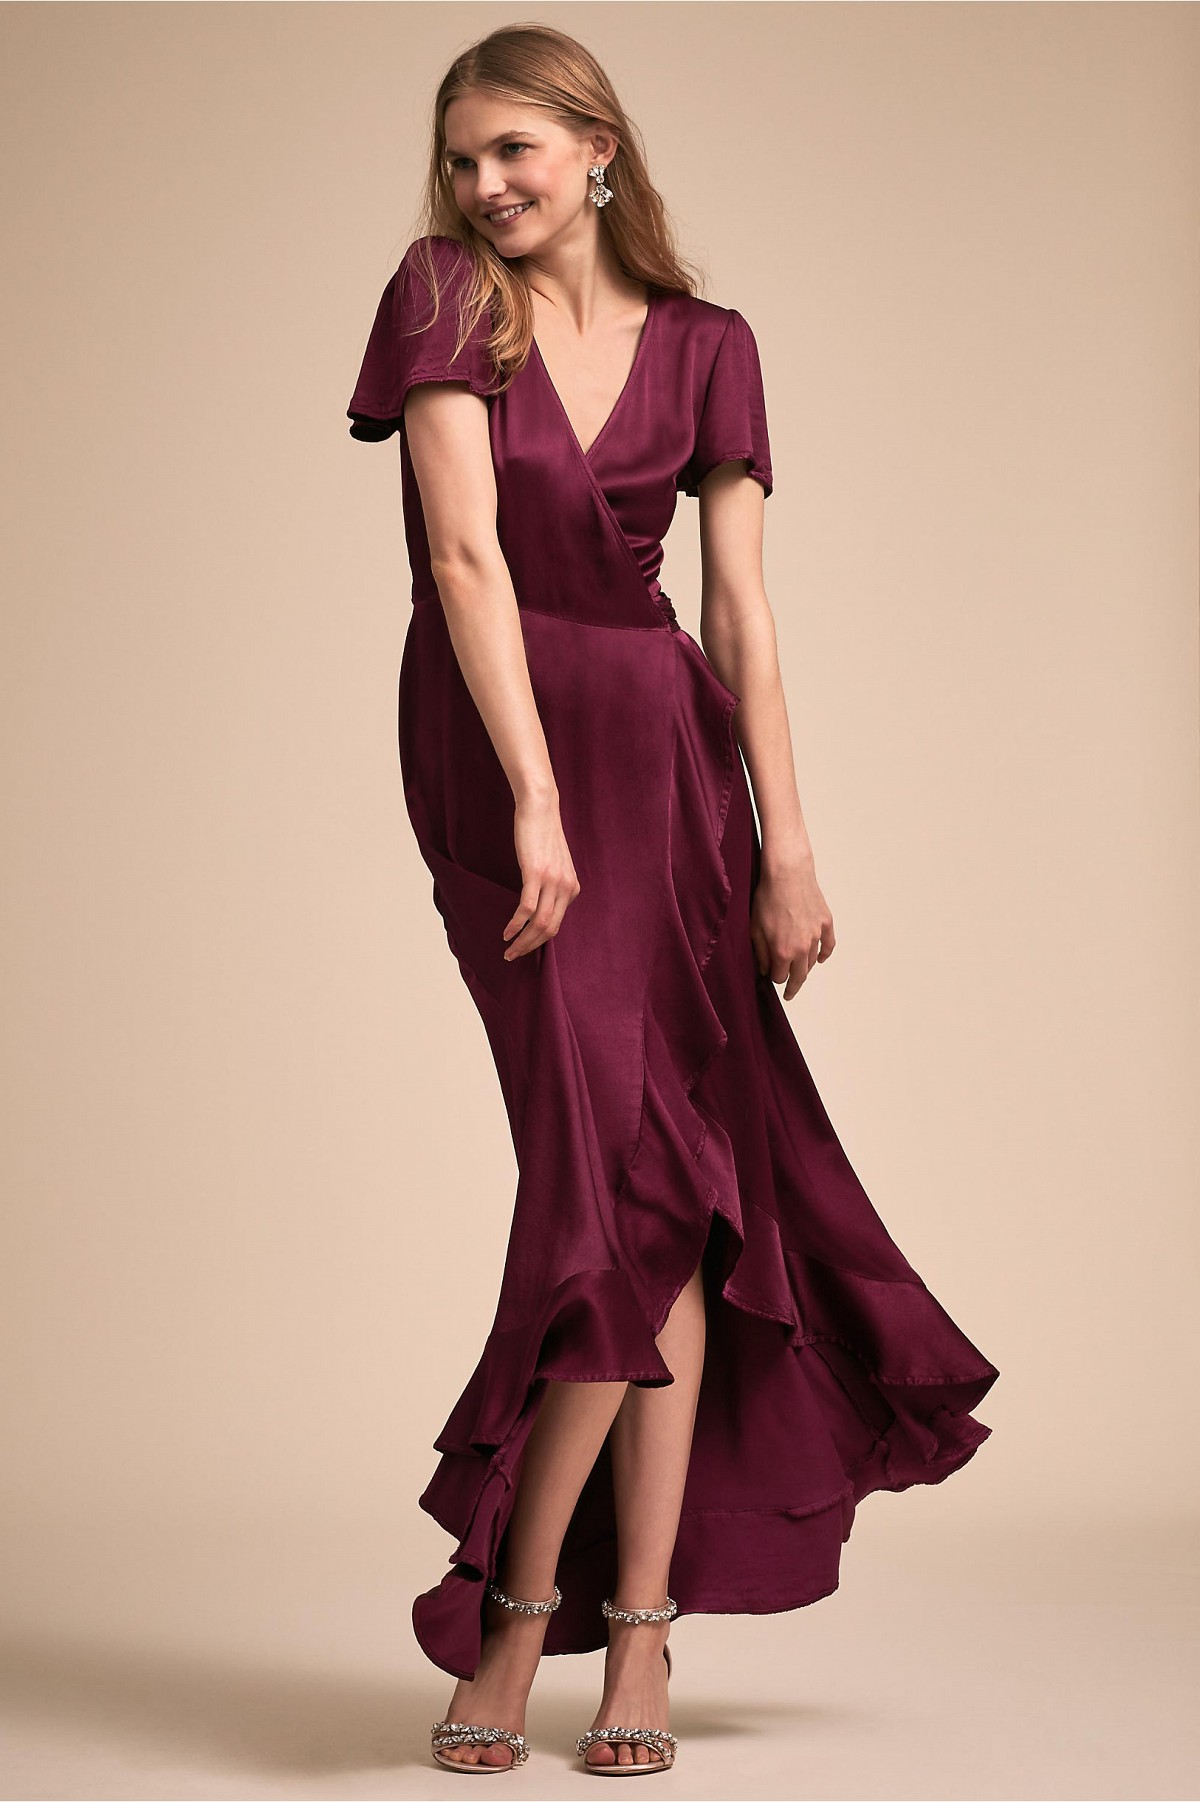 Bridesmaid dresses by seasons - Wedding Sparrow